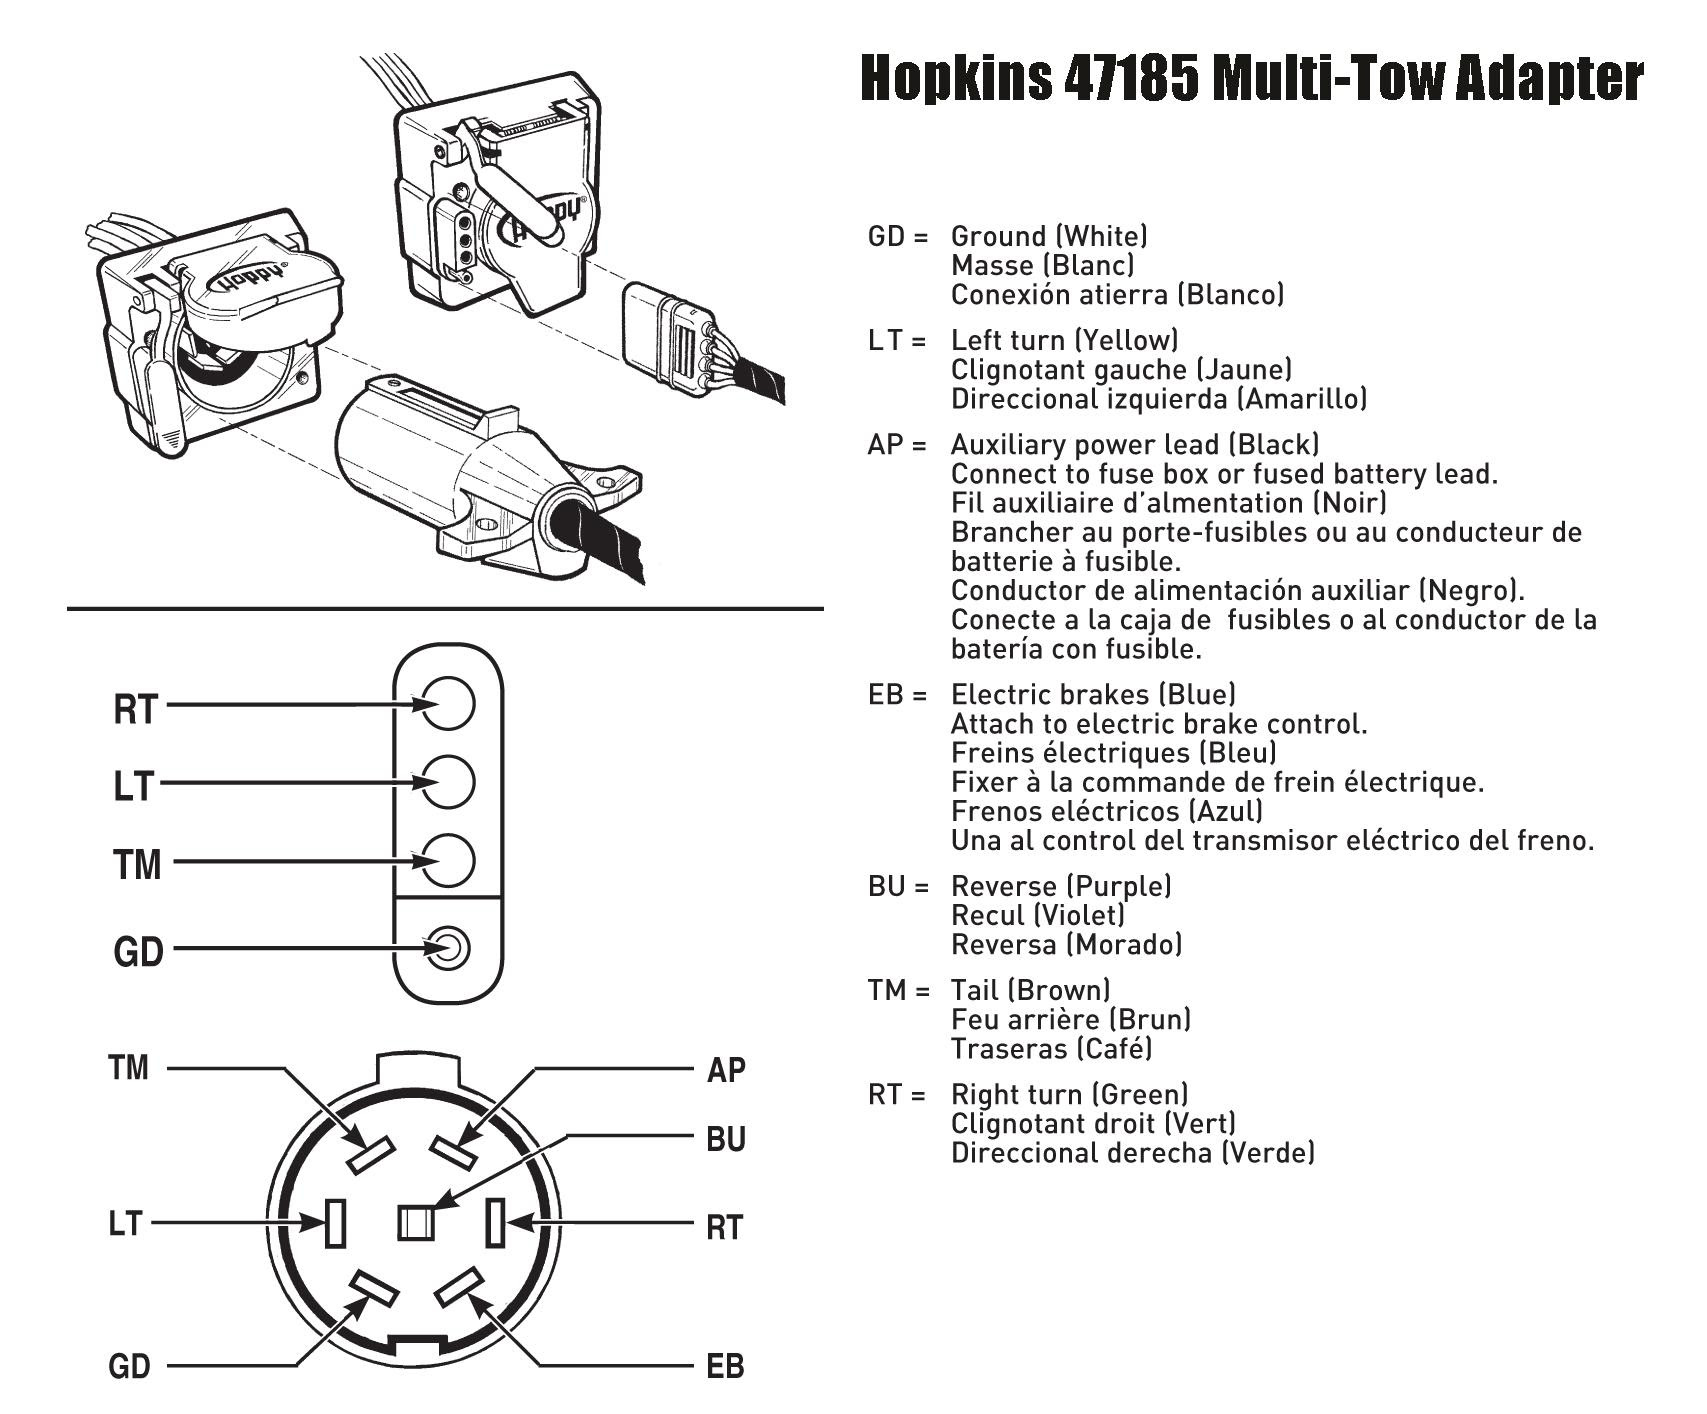 Hopkins 47185 Wiring Diagram Internal Combustion Engine Schematics Begeboy Wiring Diagram Source